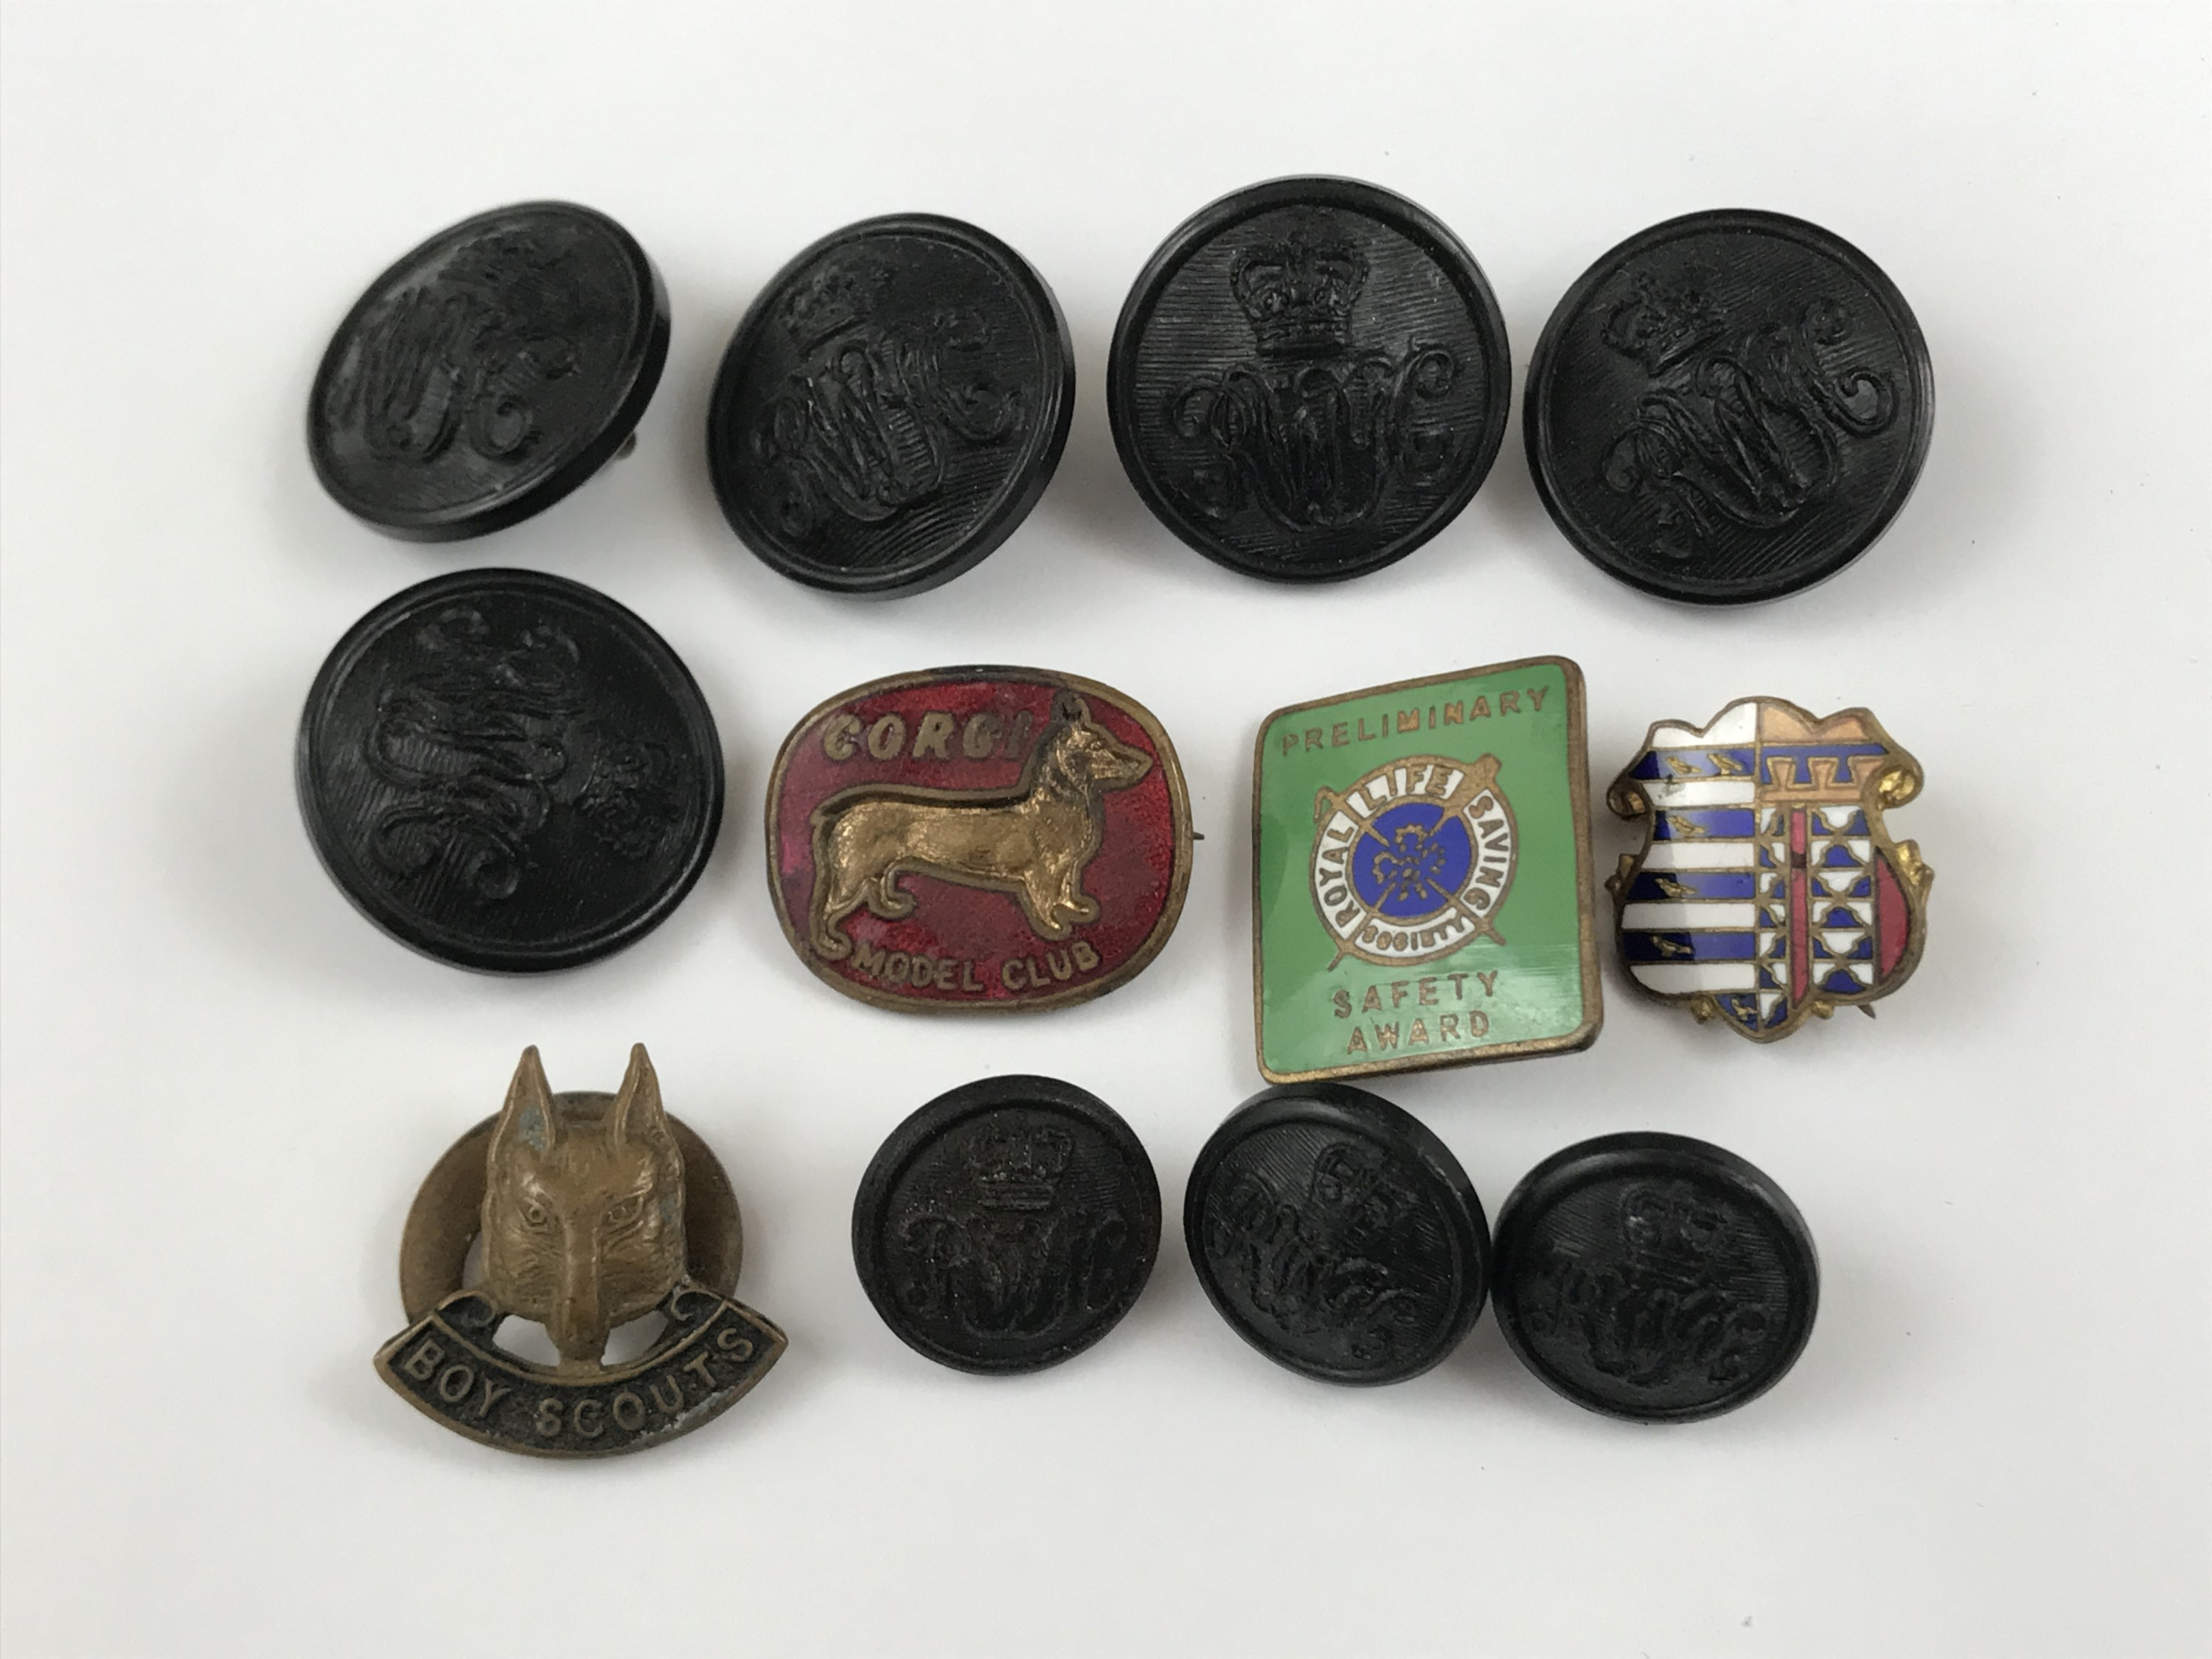 Lot 45 - Corgi Model Club, Boy Scouts and other lapel badges and buttons